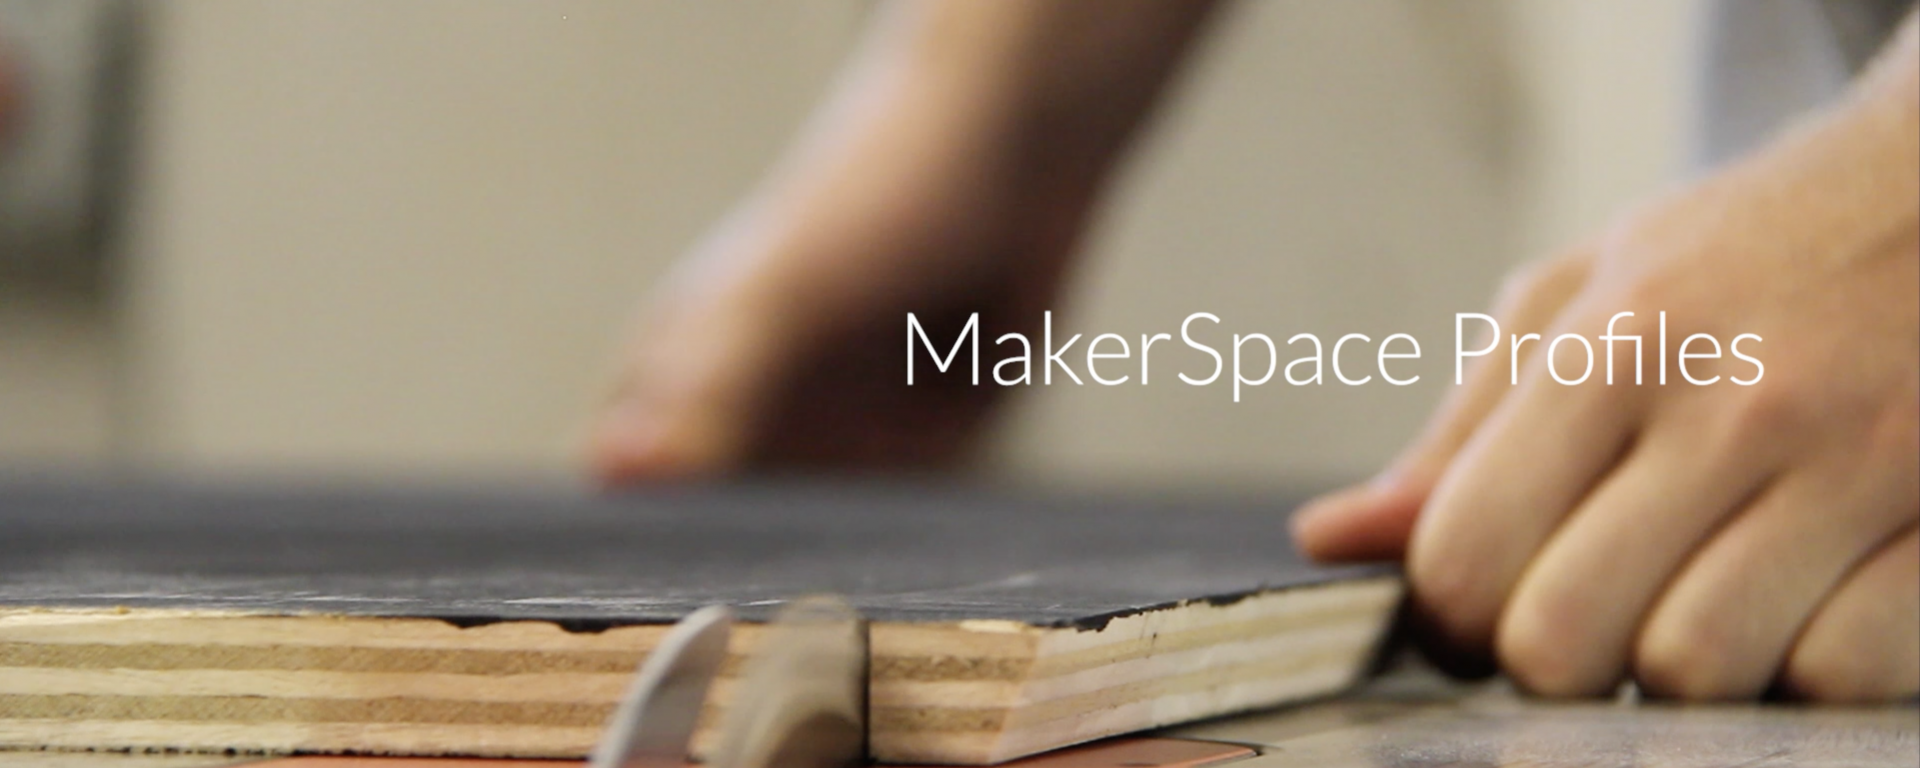 MakerSpace Profiles title card with saw